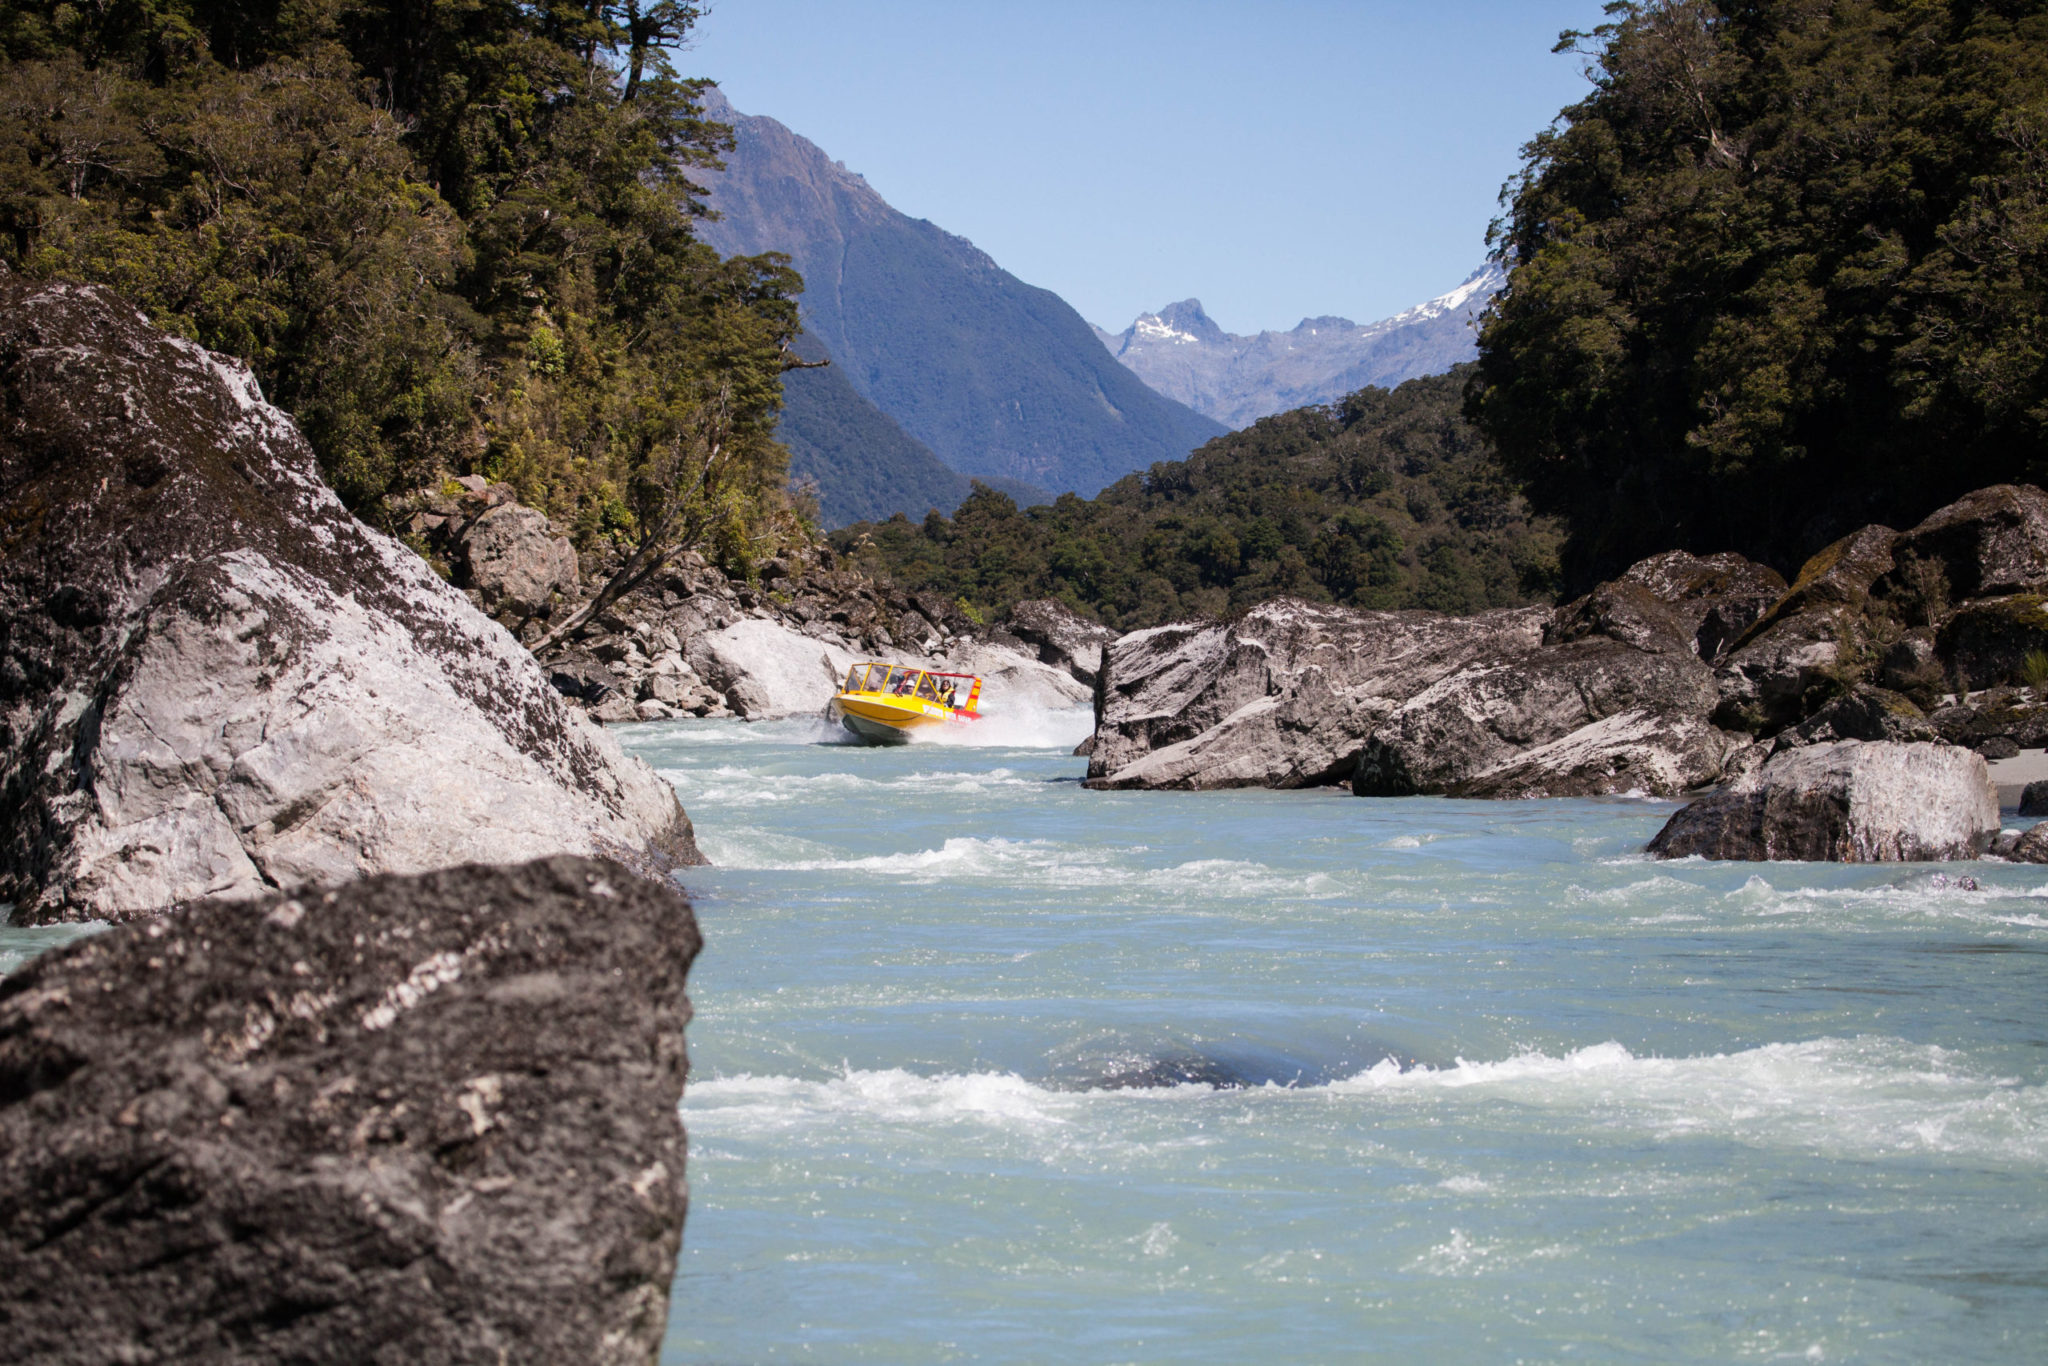 Waiatoto River jet boating experience in New Zealand